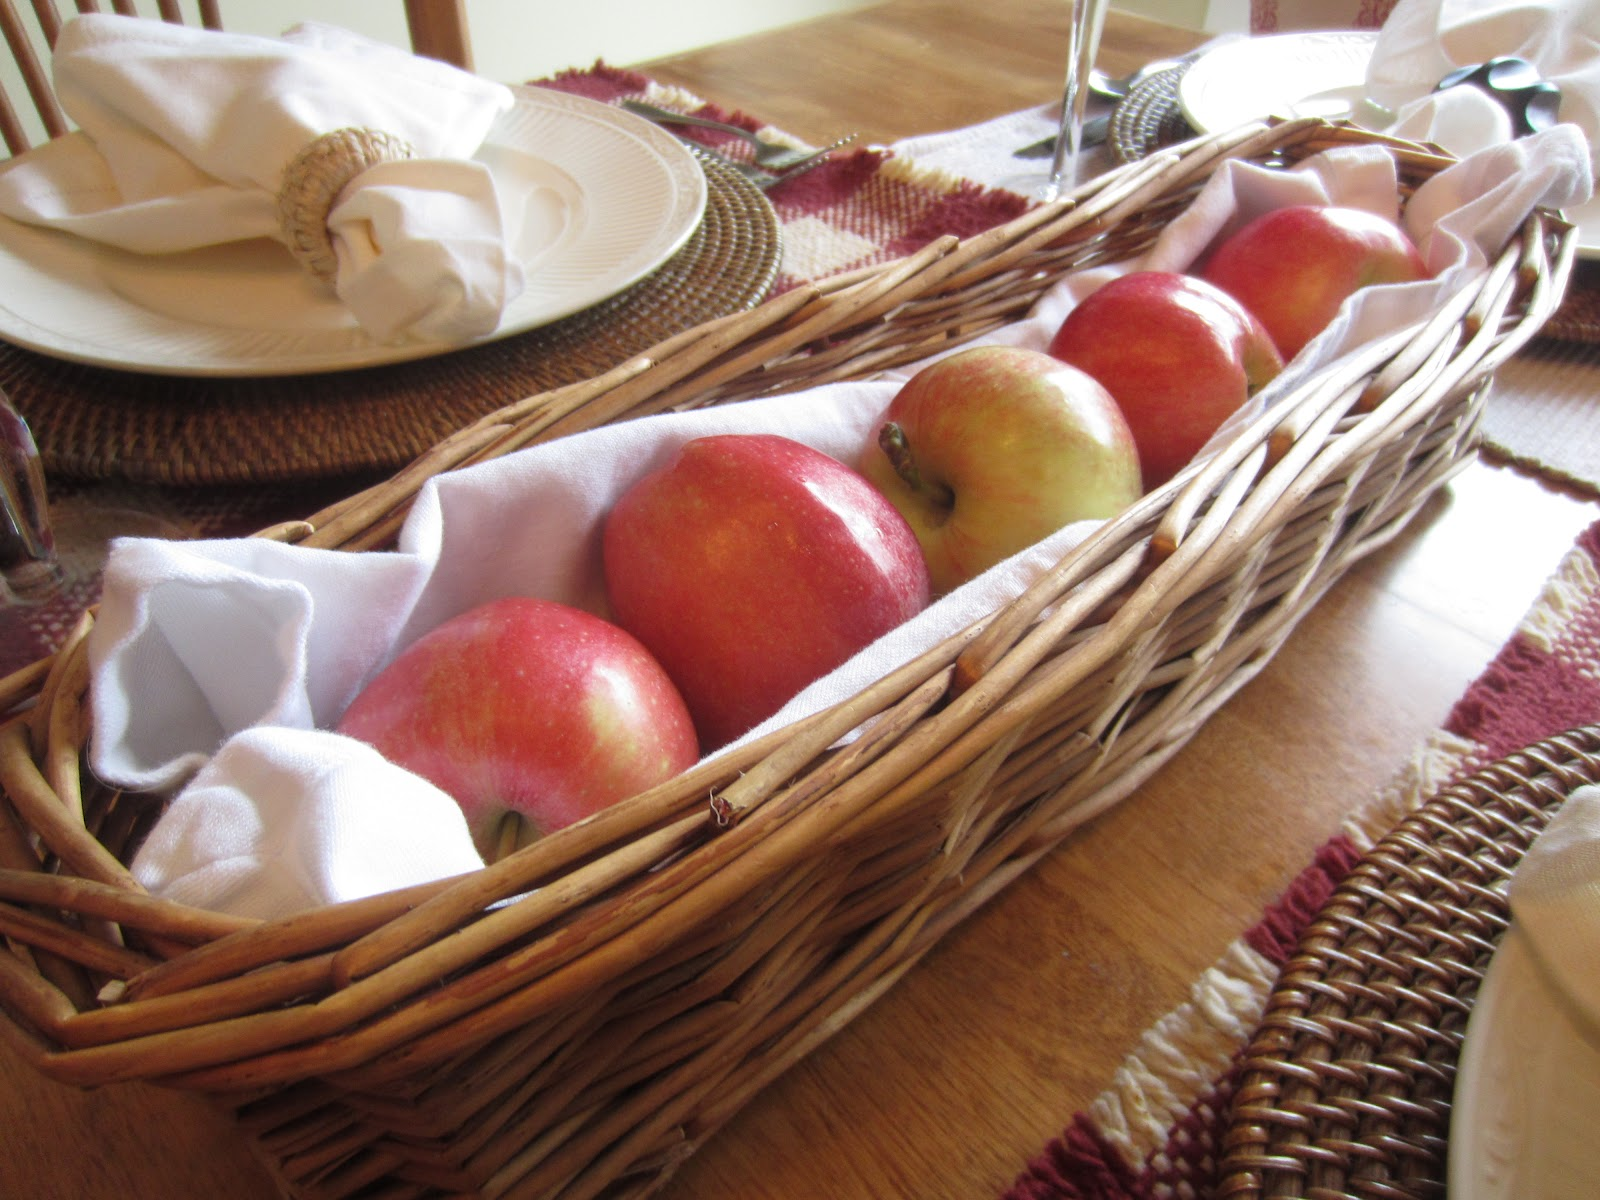 Fall Table Setting with Apples - Using seasonal fruits and colors to create a warm and inviting autumn table.